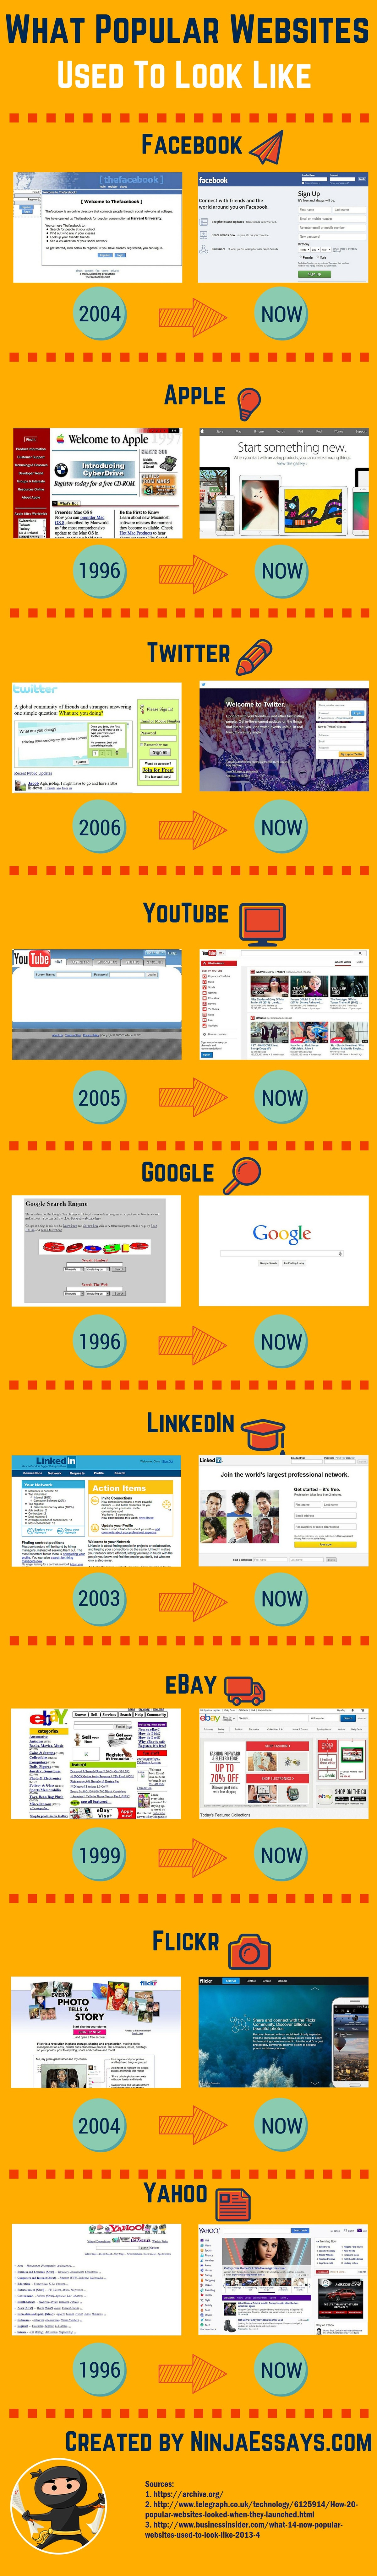 What-Popular-Websites-Used-to-Look-Like-2.jpg